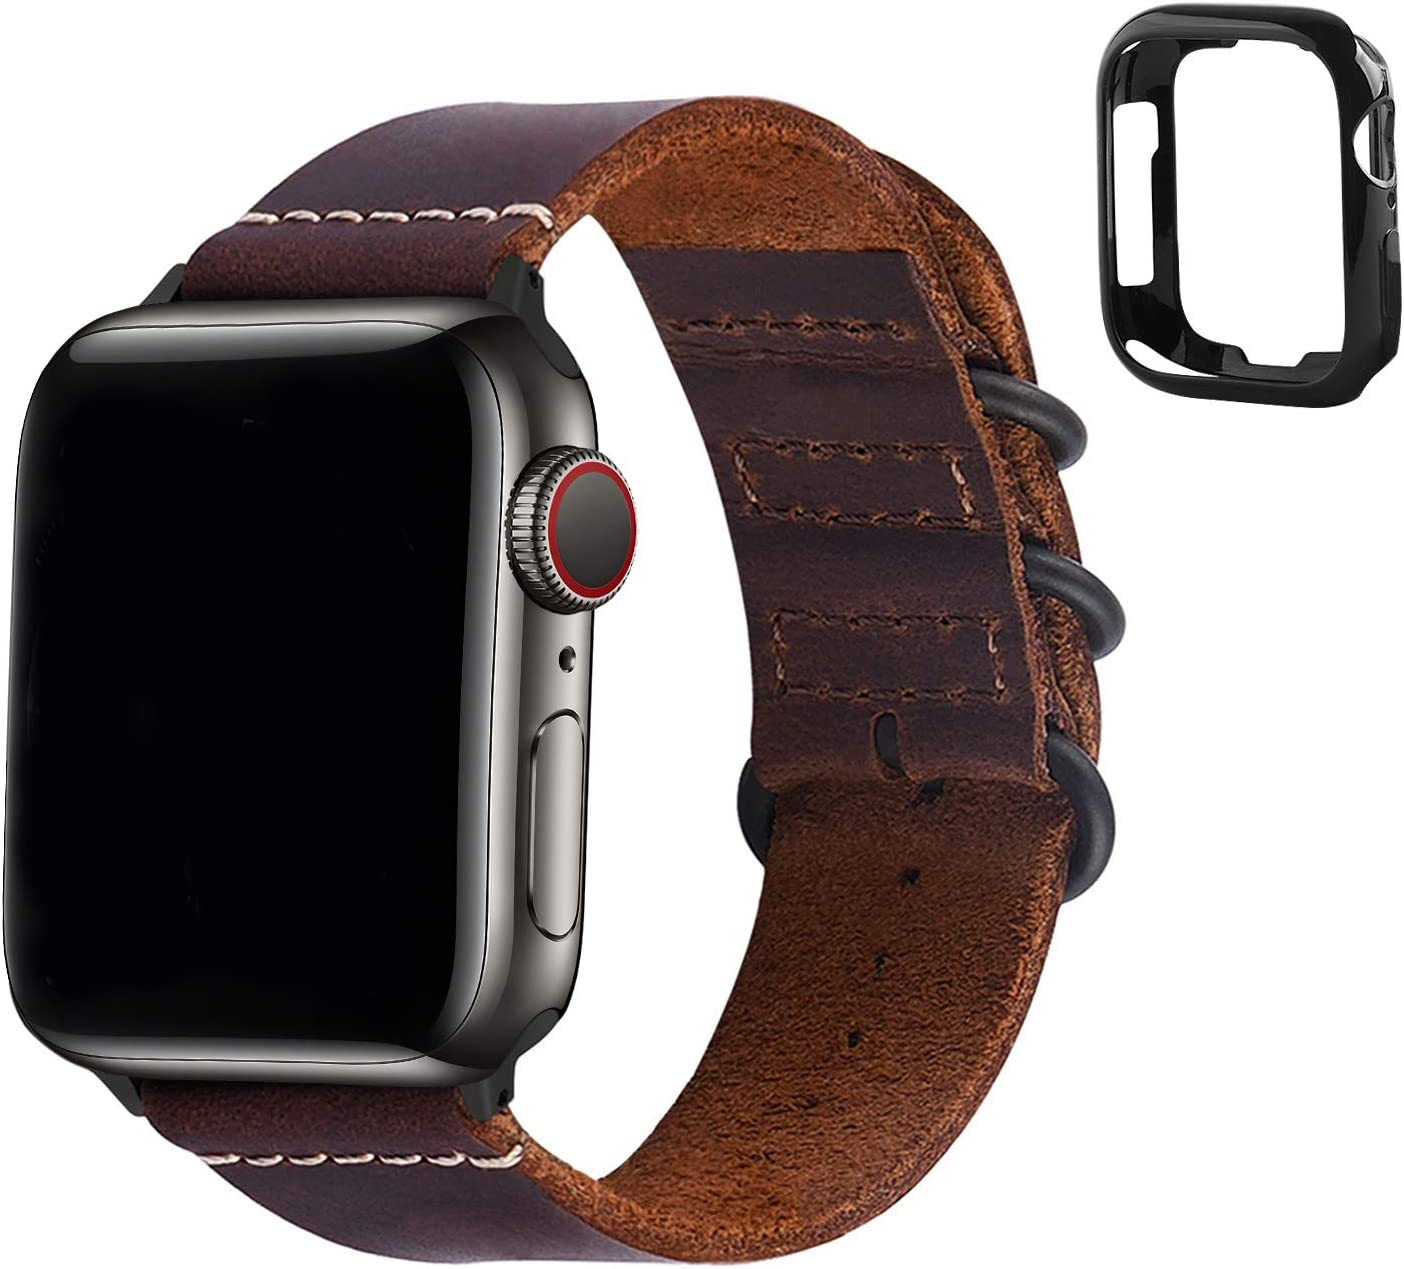 Fullmosa Compatible Apple Watch Band 44mm 42mm 38mm 40mm,Leather NATO Strap for iWatch SE & Series 6/5/4/3/2/1,Brown,44mm 42mm